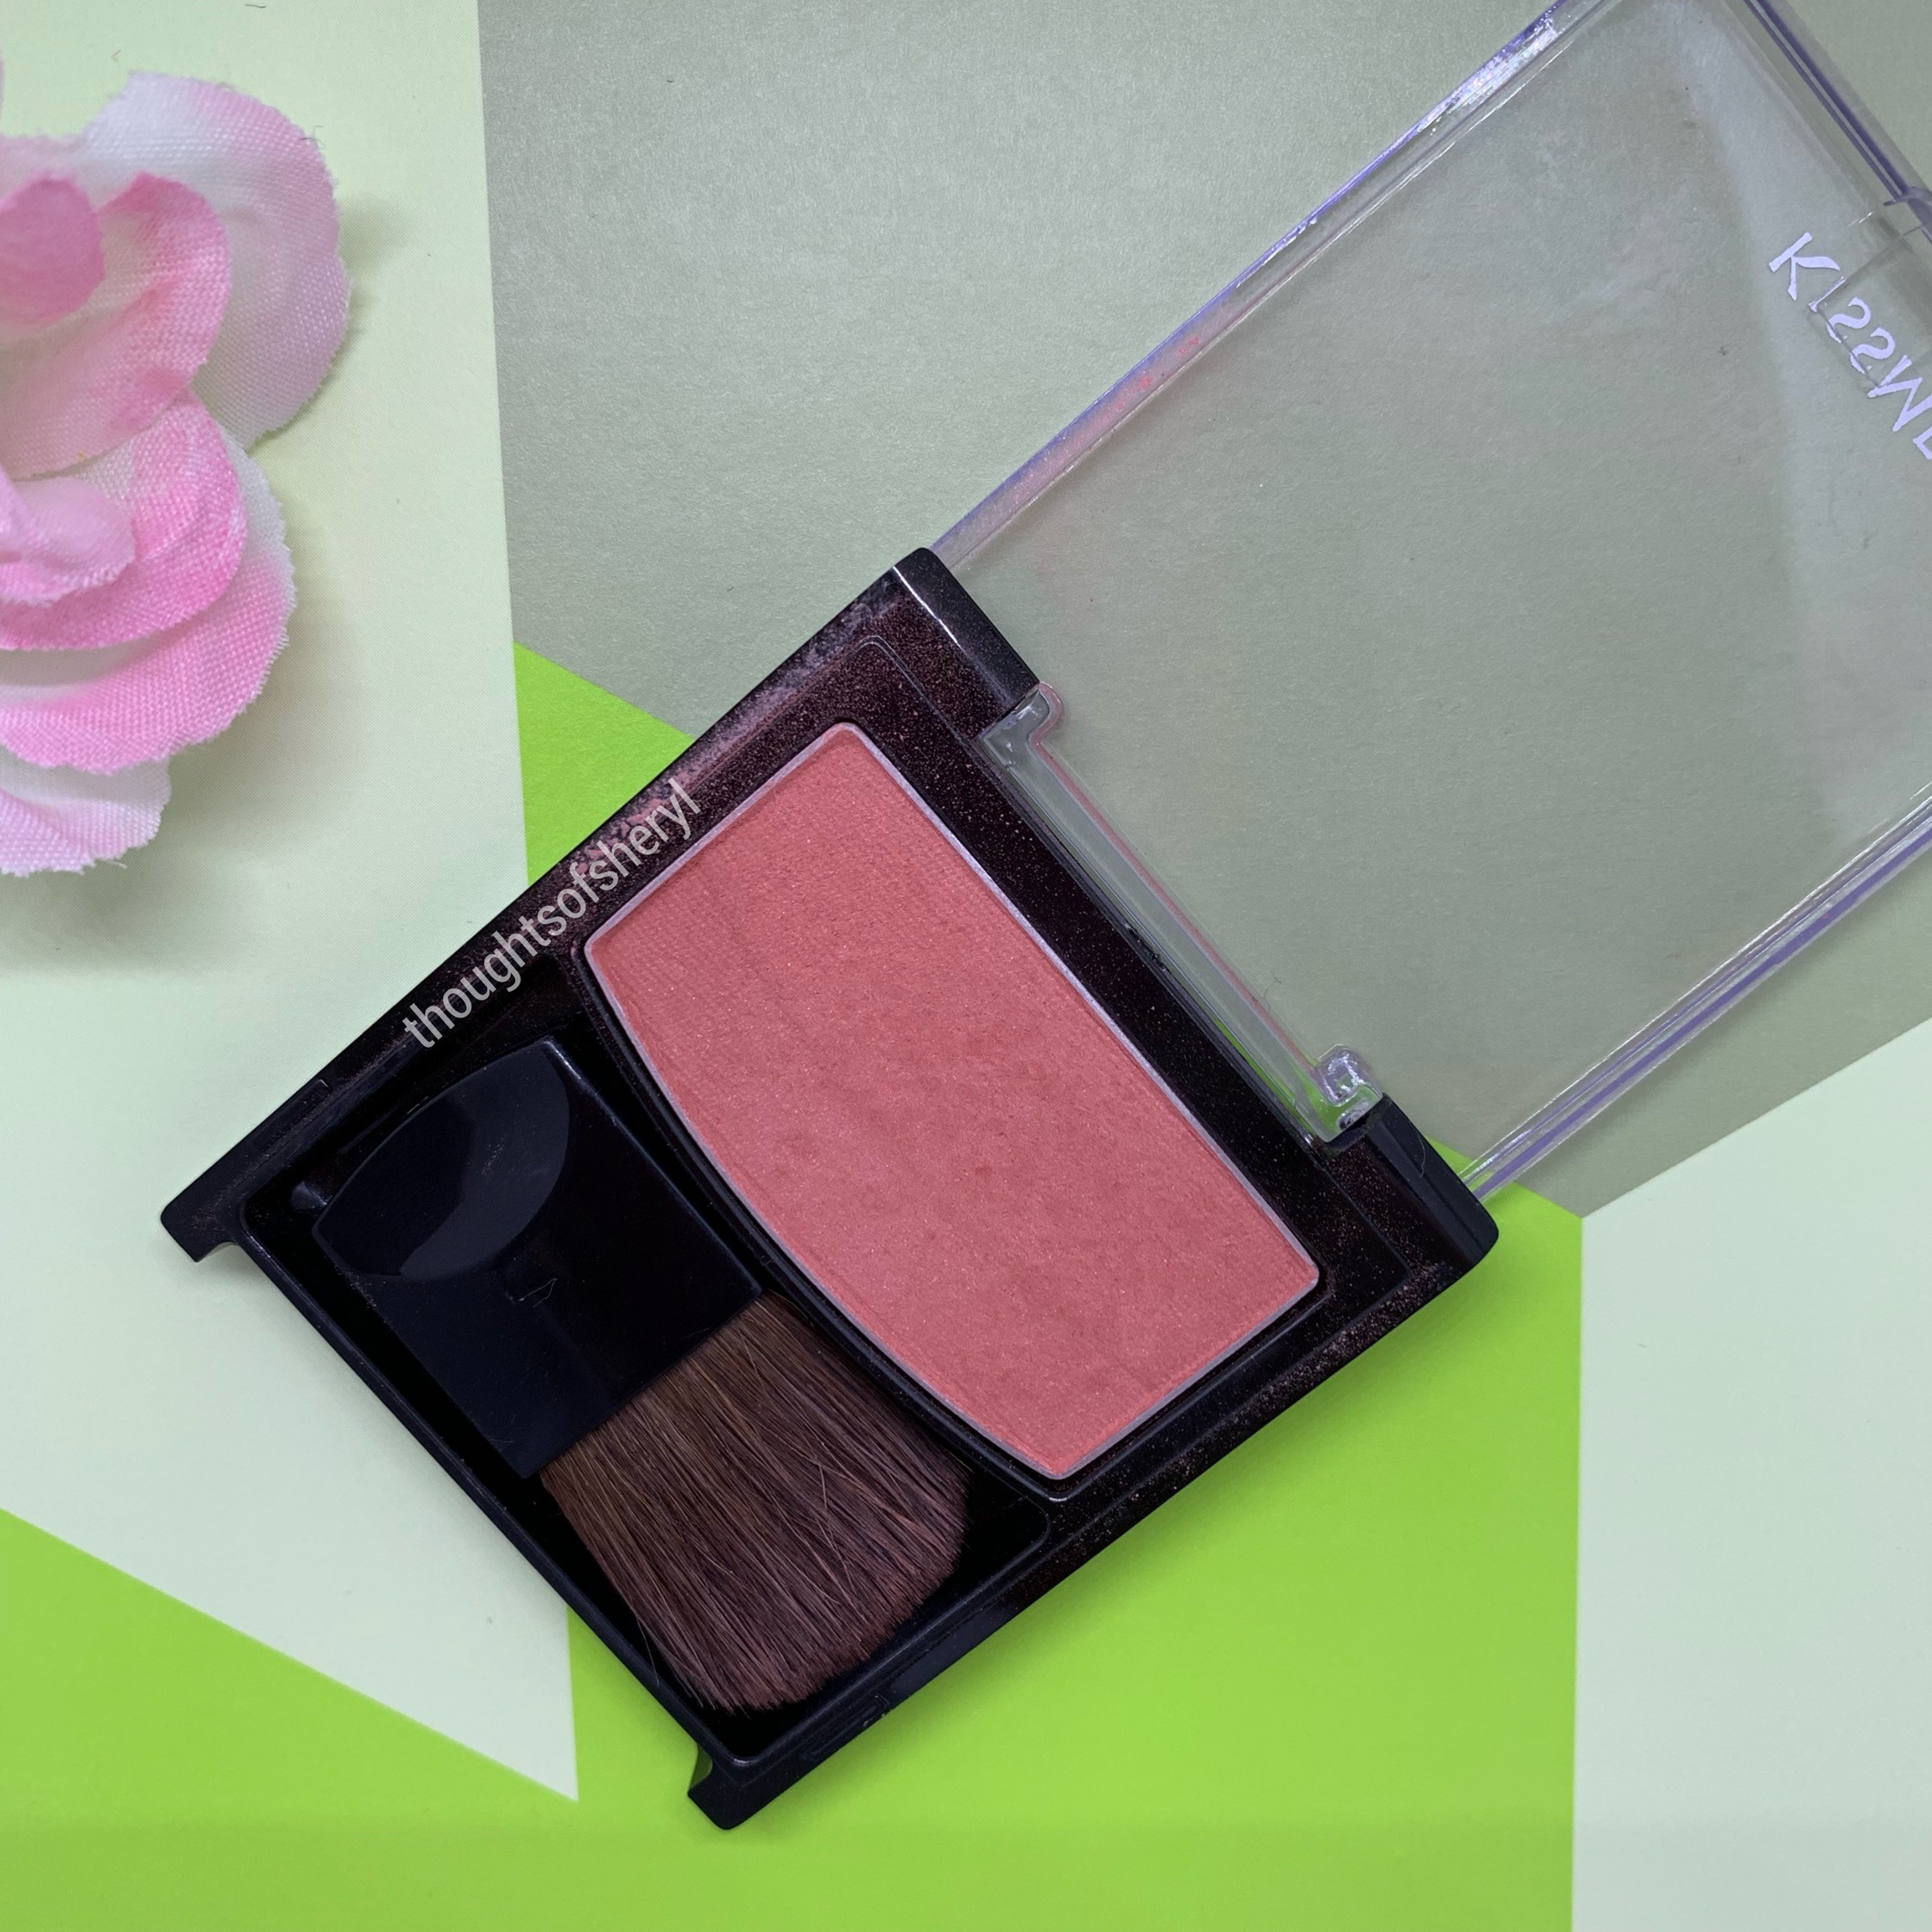 kiss me ferme brightening cheek 03 coral red review